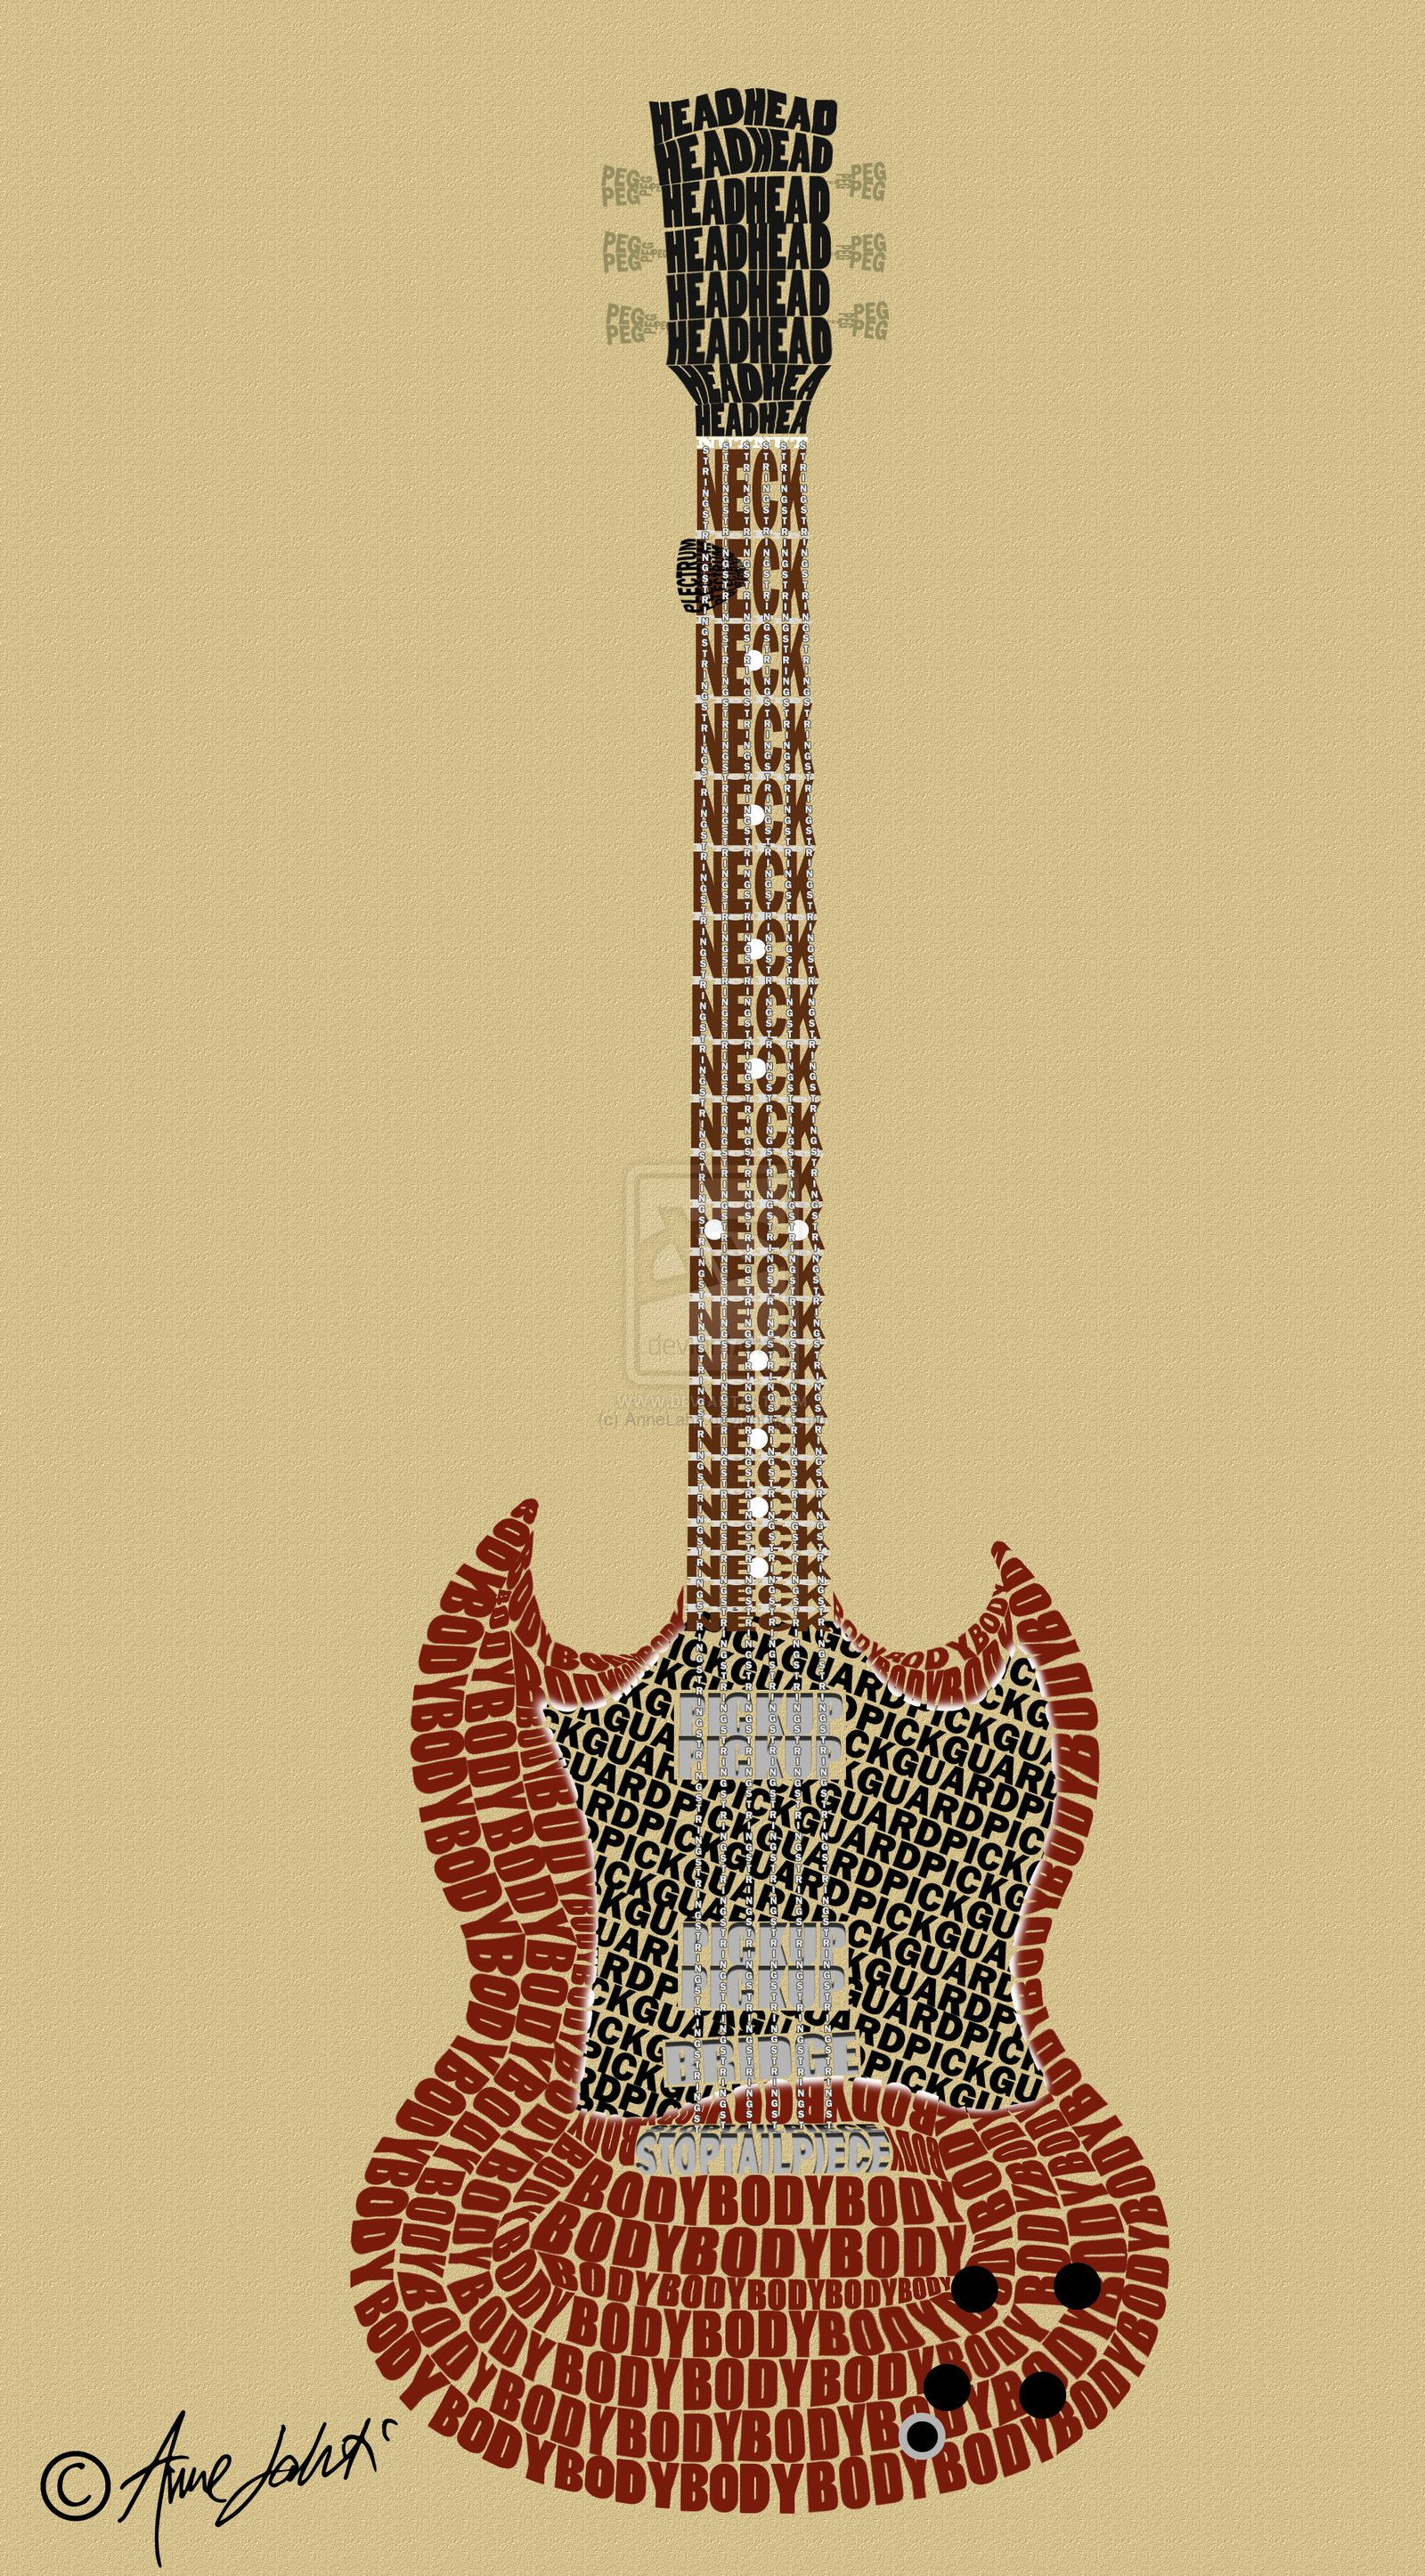 guitar anatomy typography art | Anatomy & Physiology | Pinterest ...